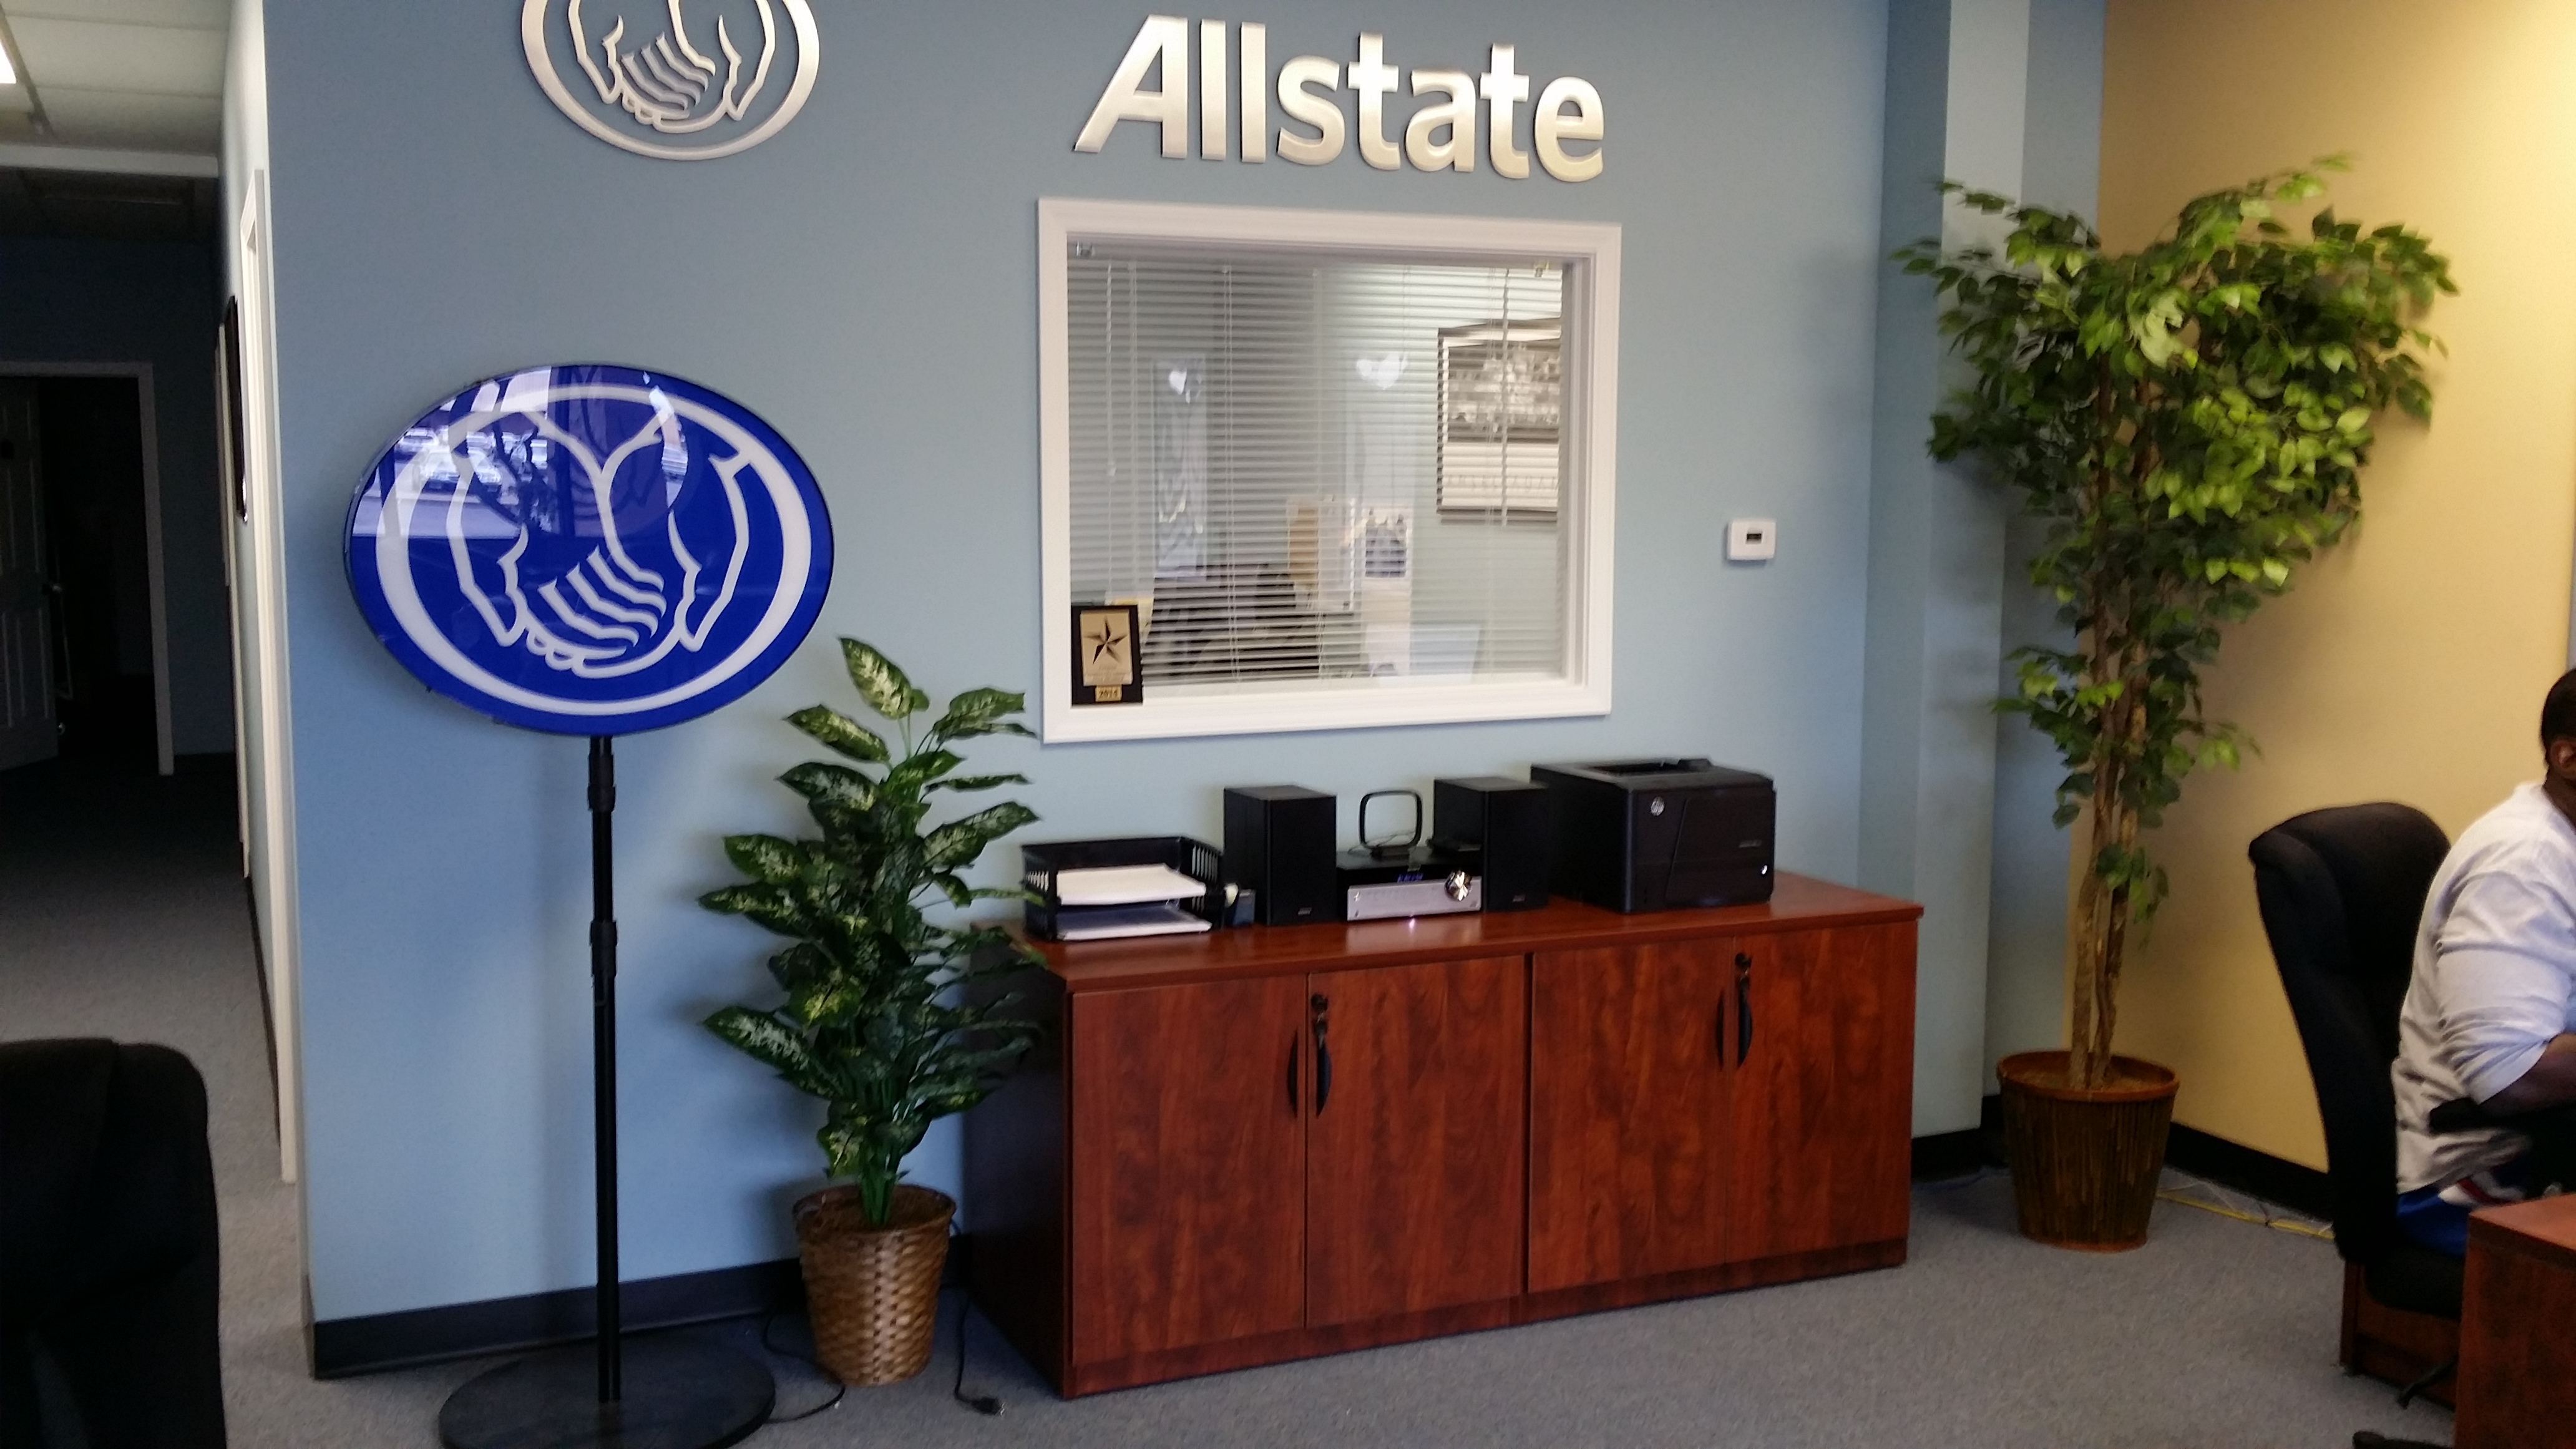 Brian Woods: Allstate Insurance image 2